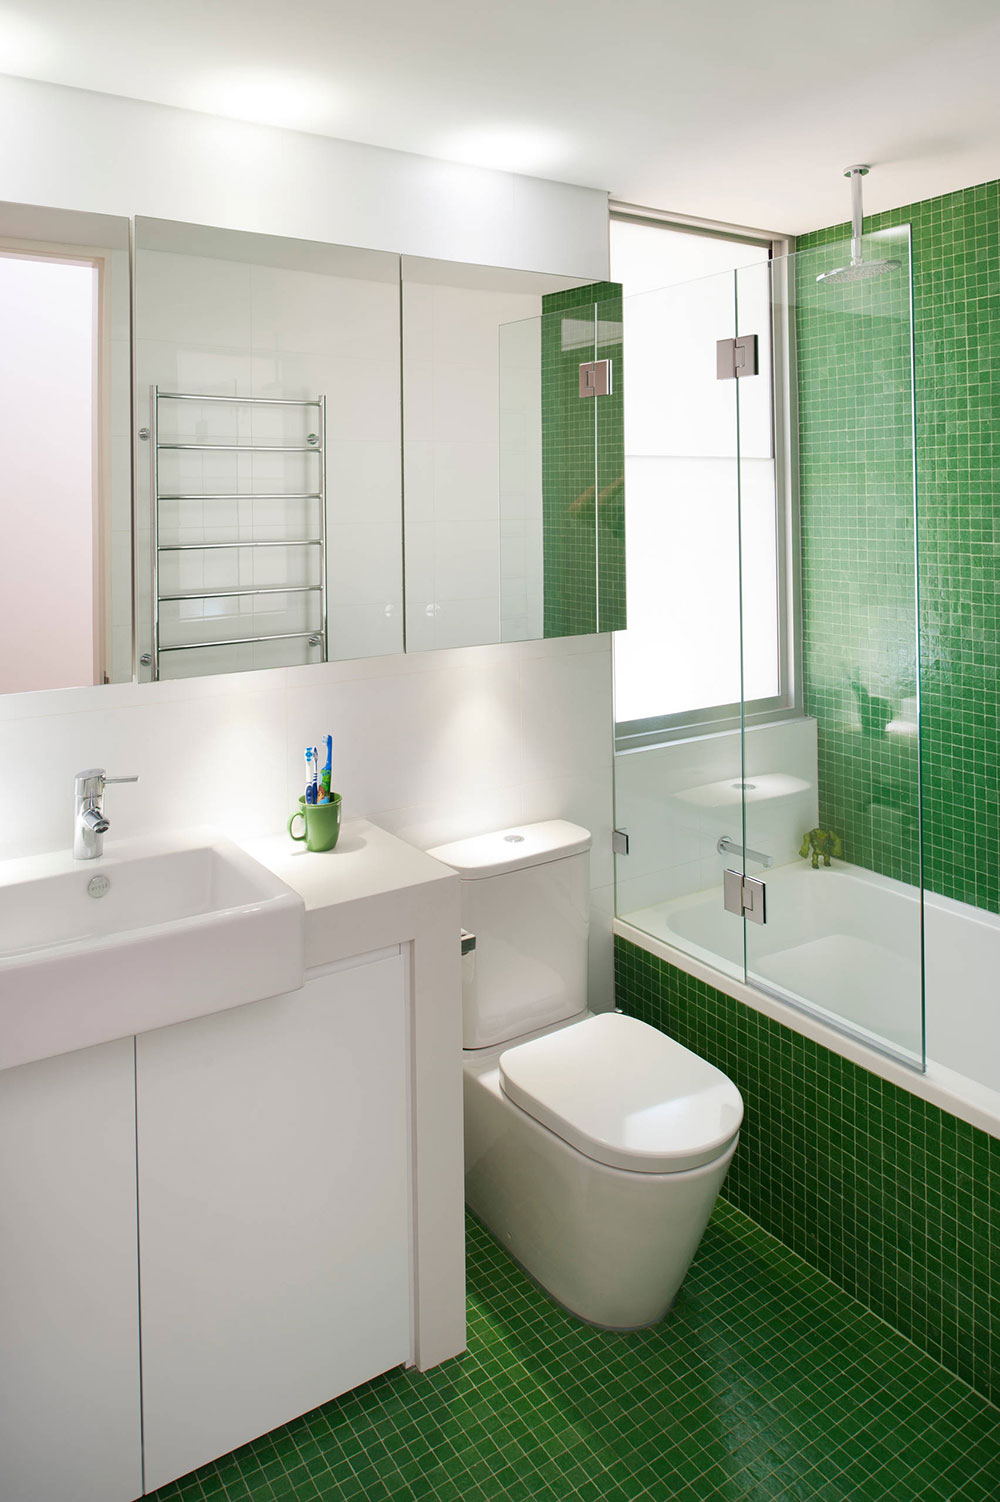 How To Make A Small Bathroom Look Bigger6